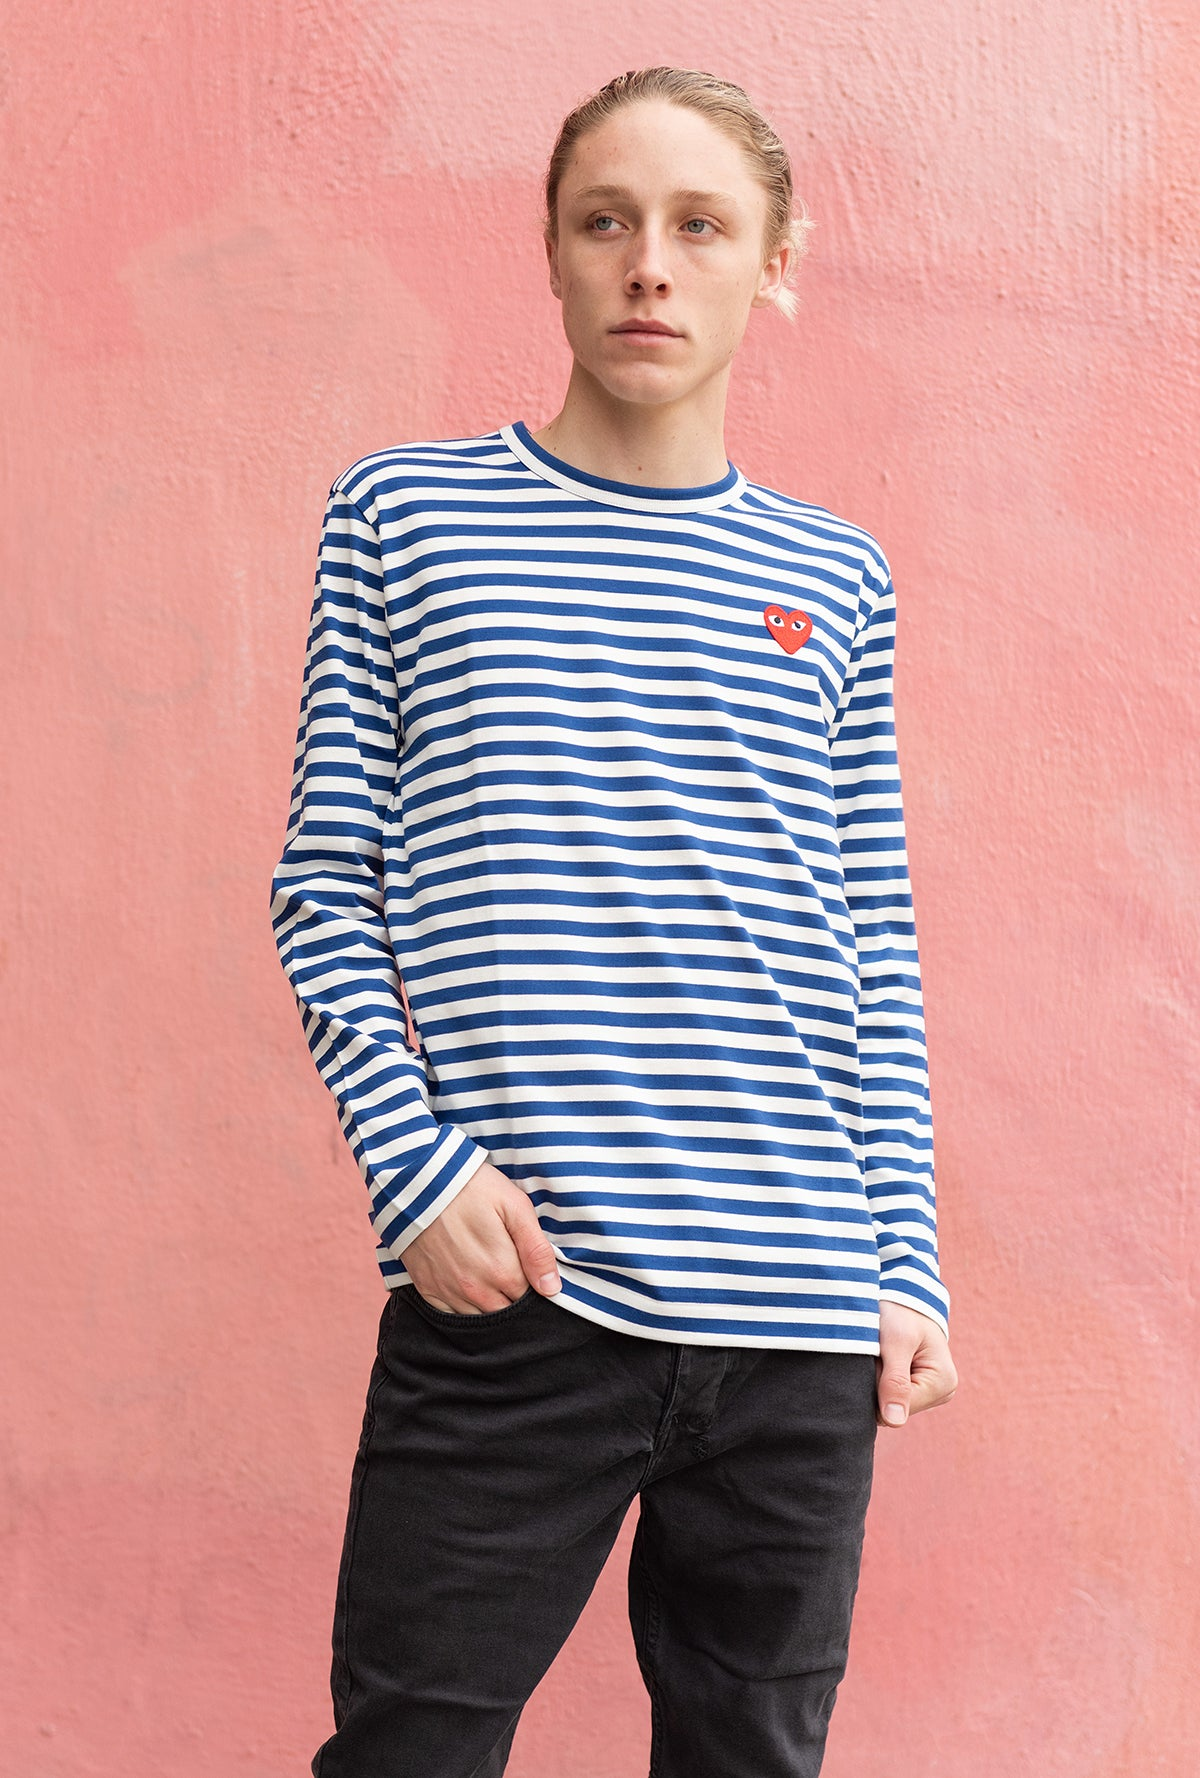 Men's Striped L/S Tee